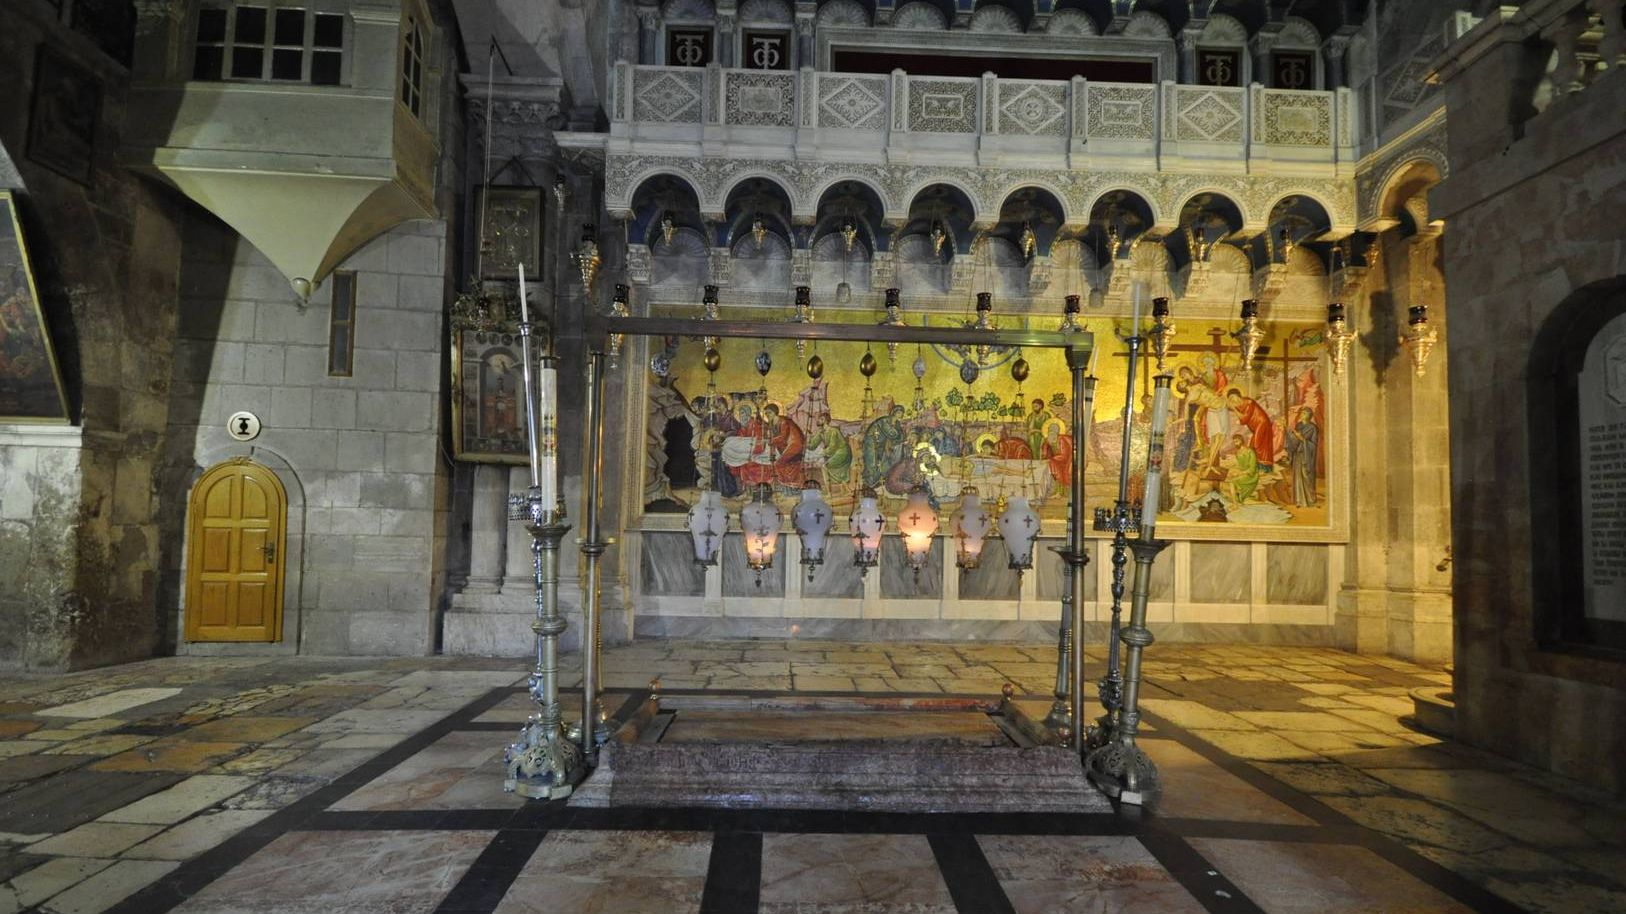 The Stone of Anointing - The Church of the Holy Sepulchre